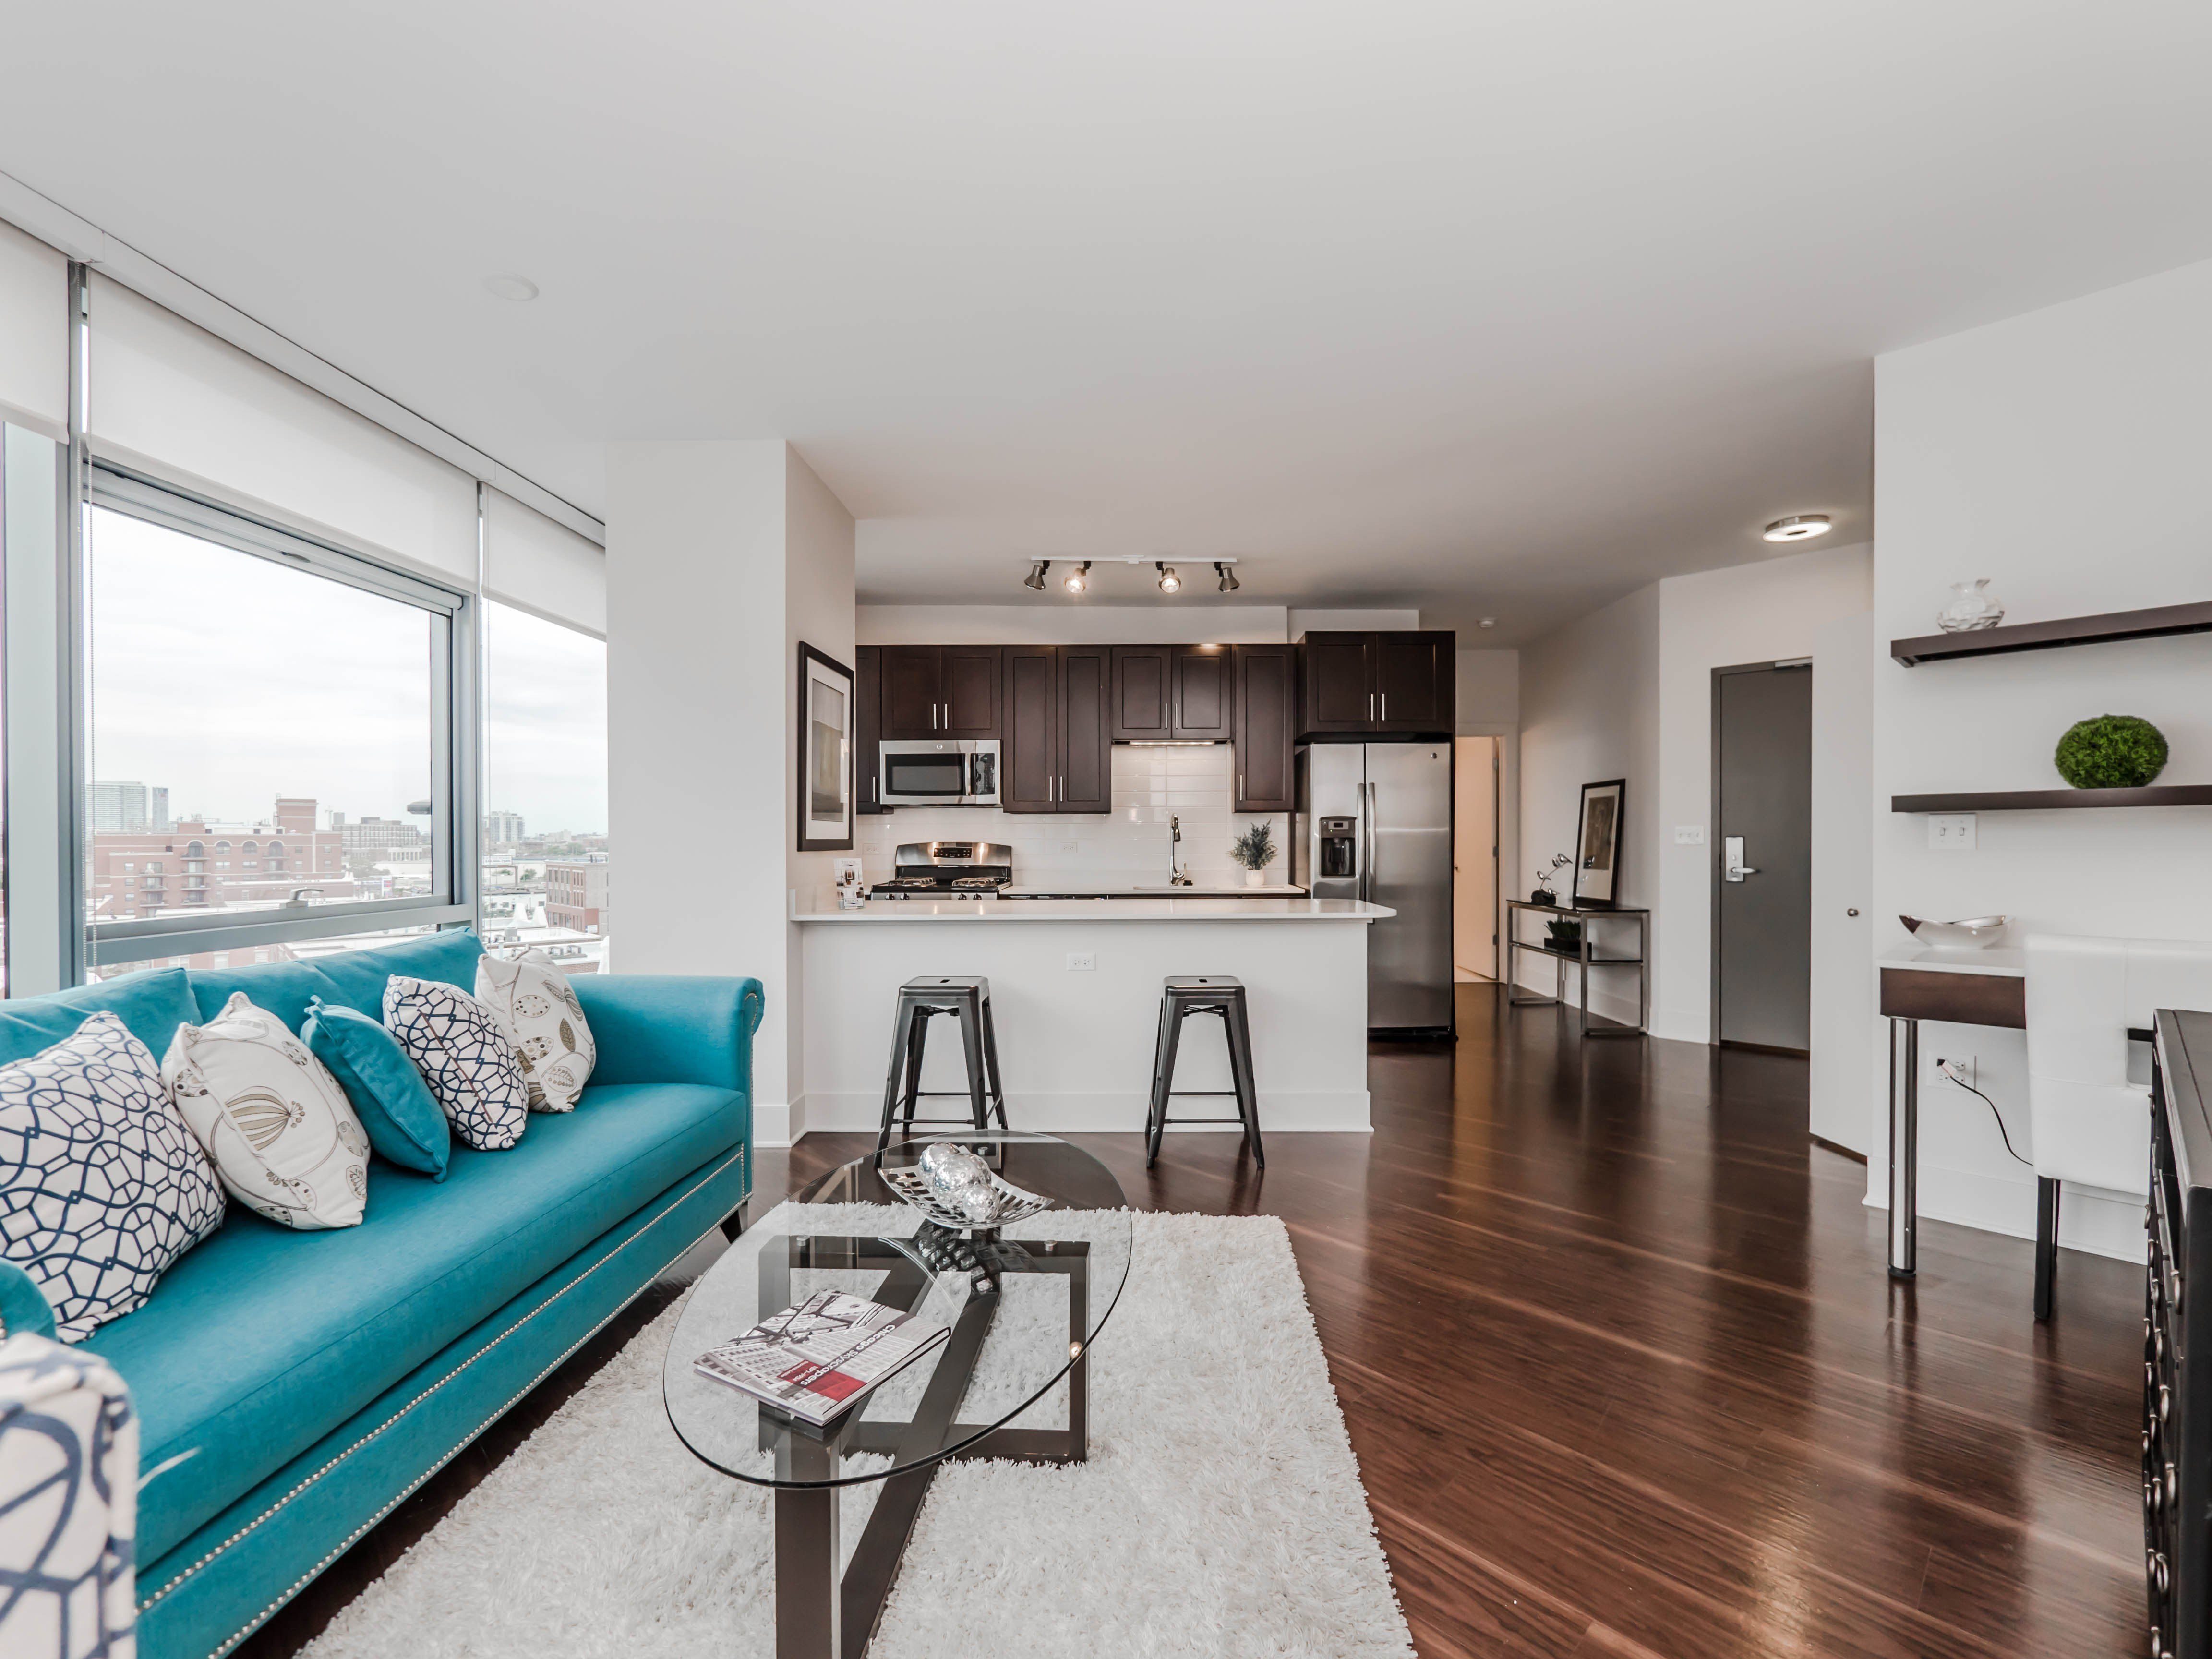 Best Tour A One Bedroom Plus Den At The New New City Apartments – Yochicago With Pictures